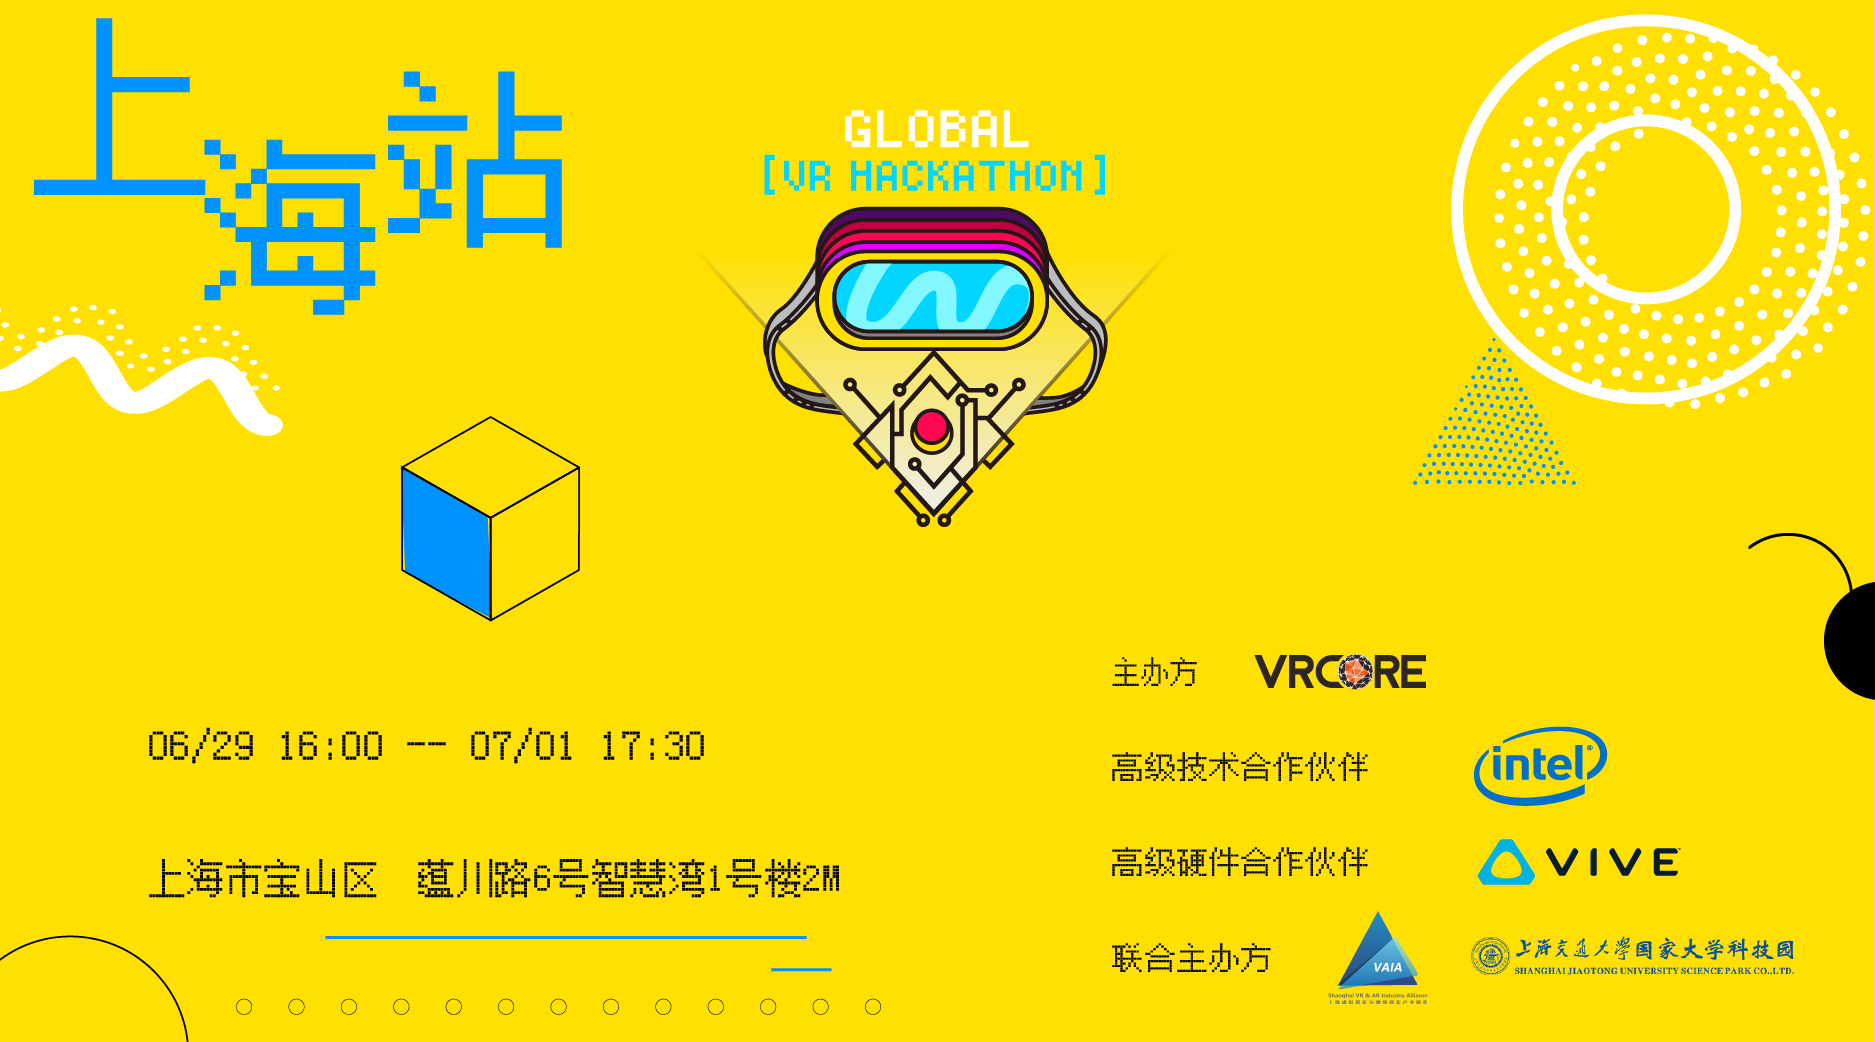 Developed Projects: Global VR Hackathon Shanghai